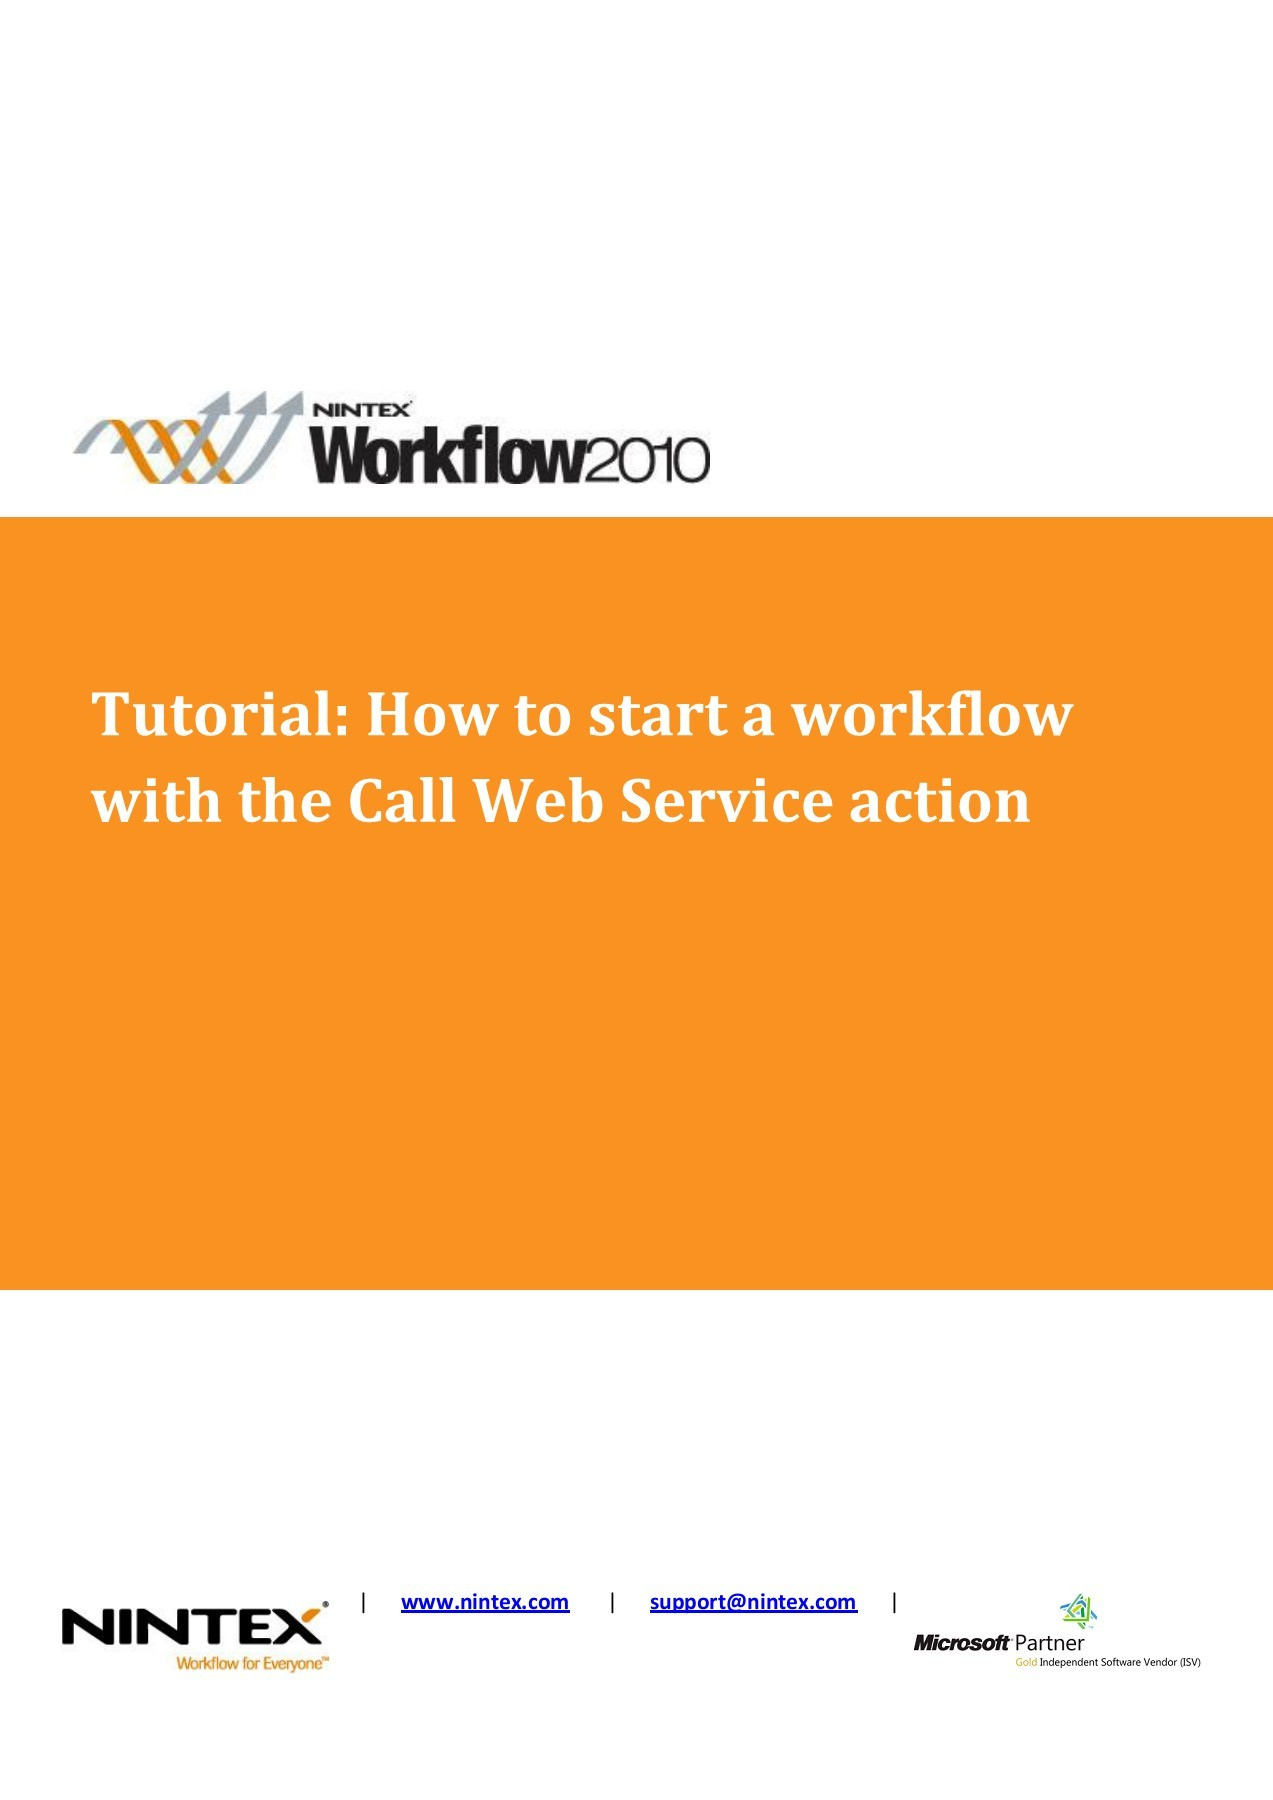 Tutorial: How to start a workflow with the Call Web